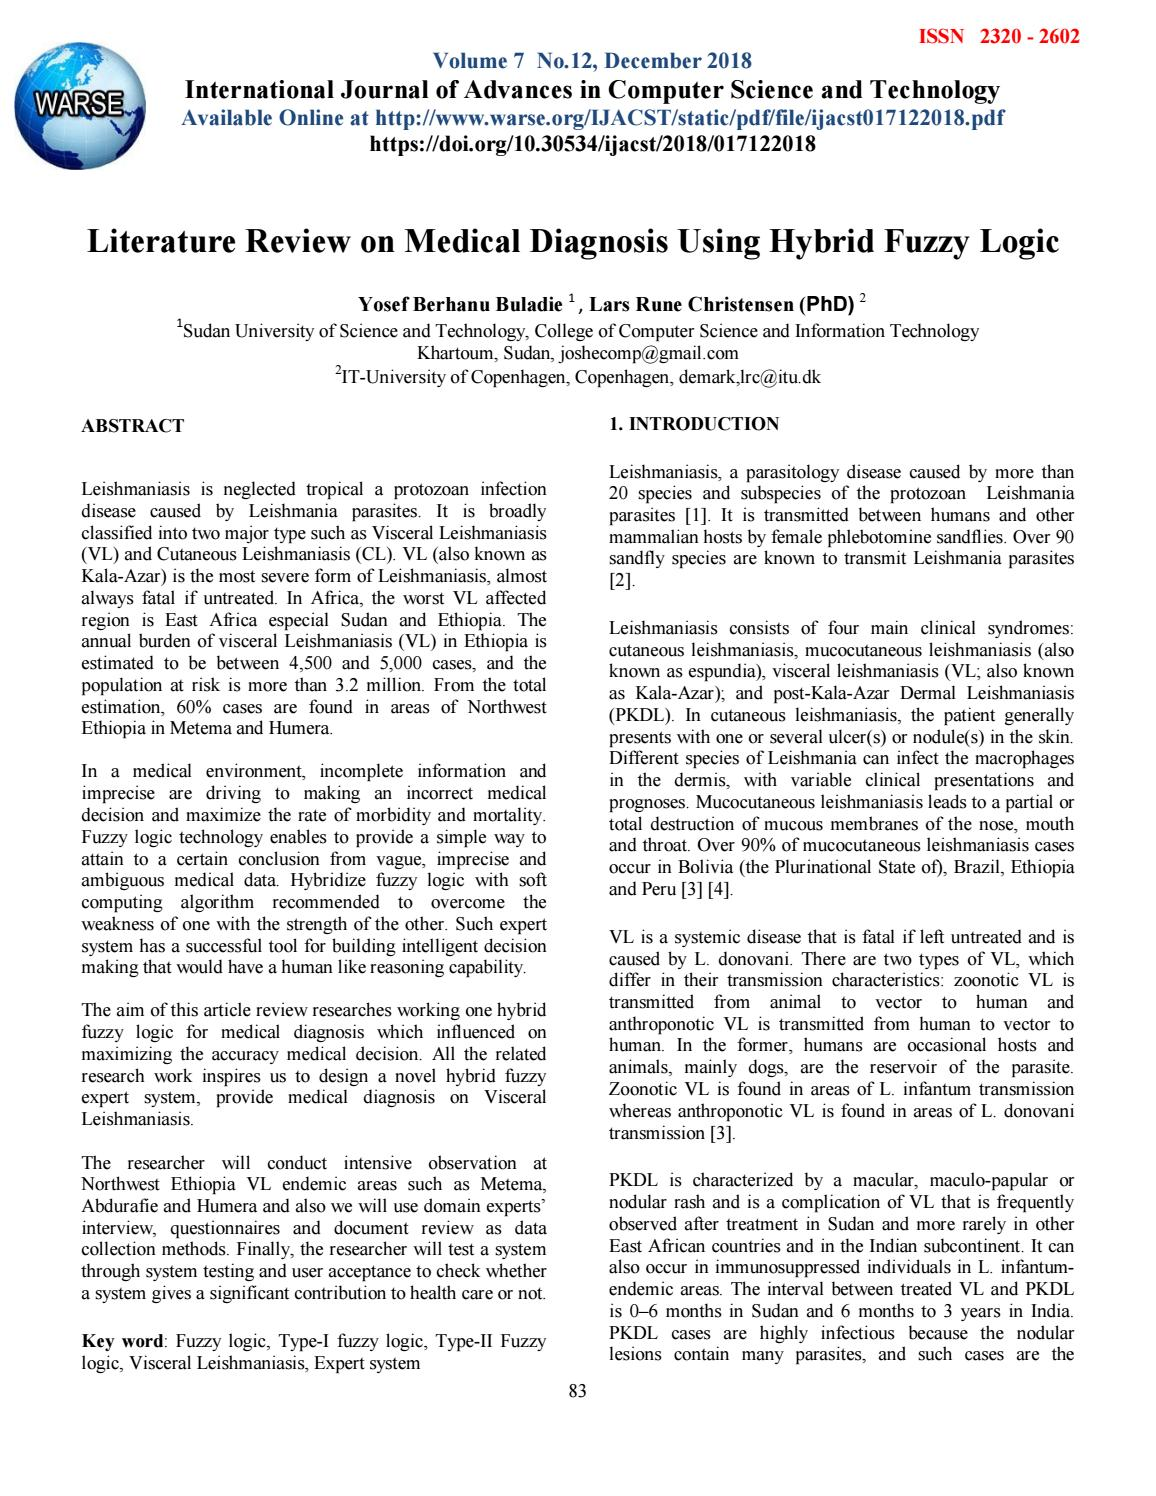 Literature Review on Medical Diagnosis Using Hybrid Fuzzy